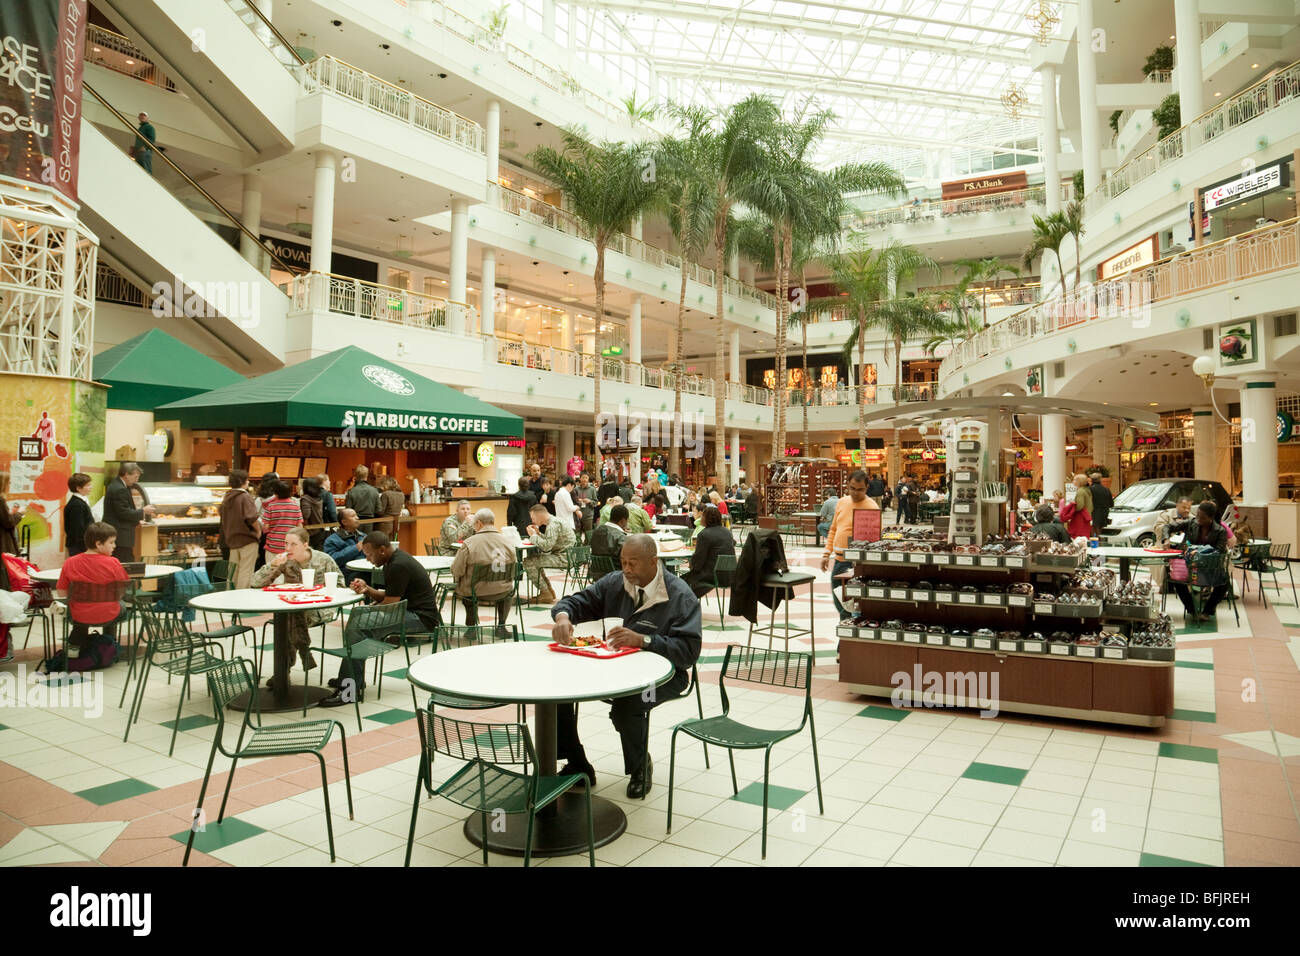 A view in the Pentagon City shopping mall, washington DC, USA - Stock Image